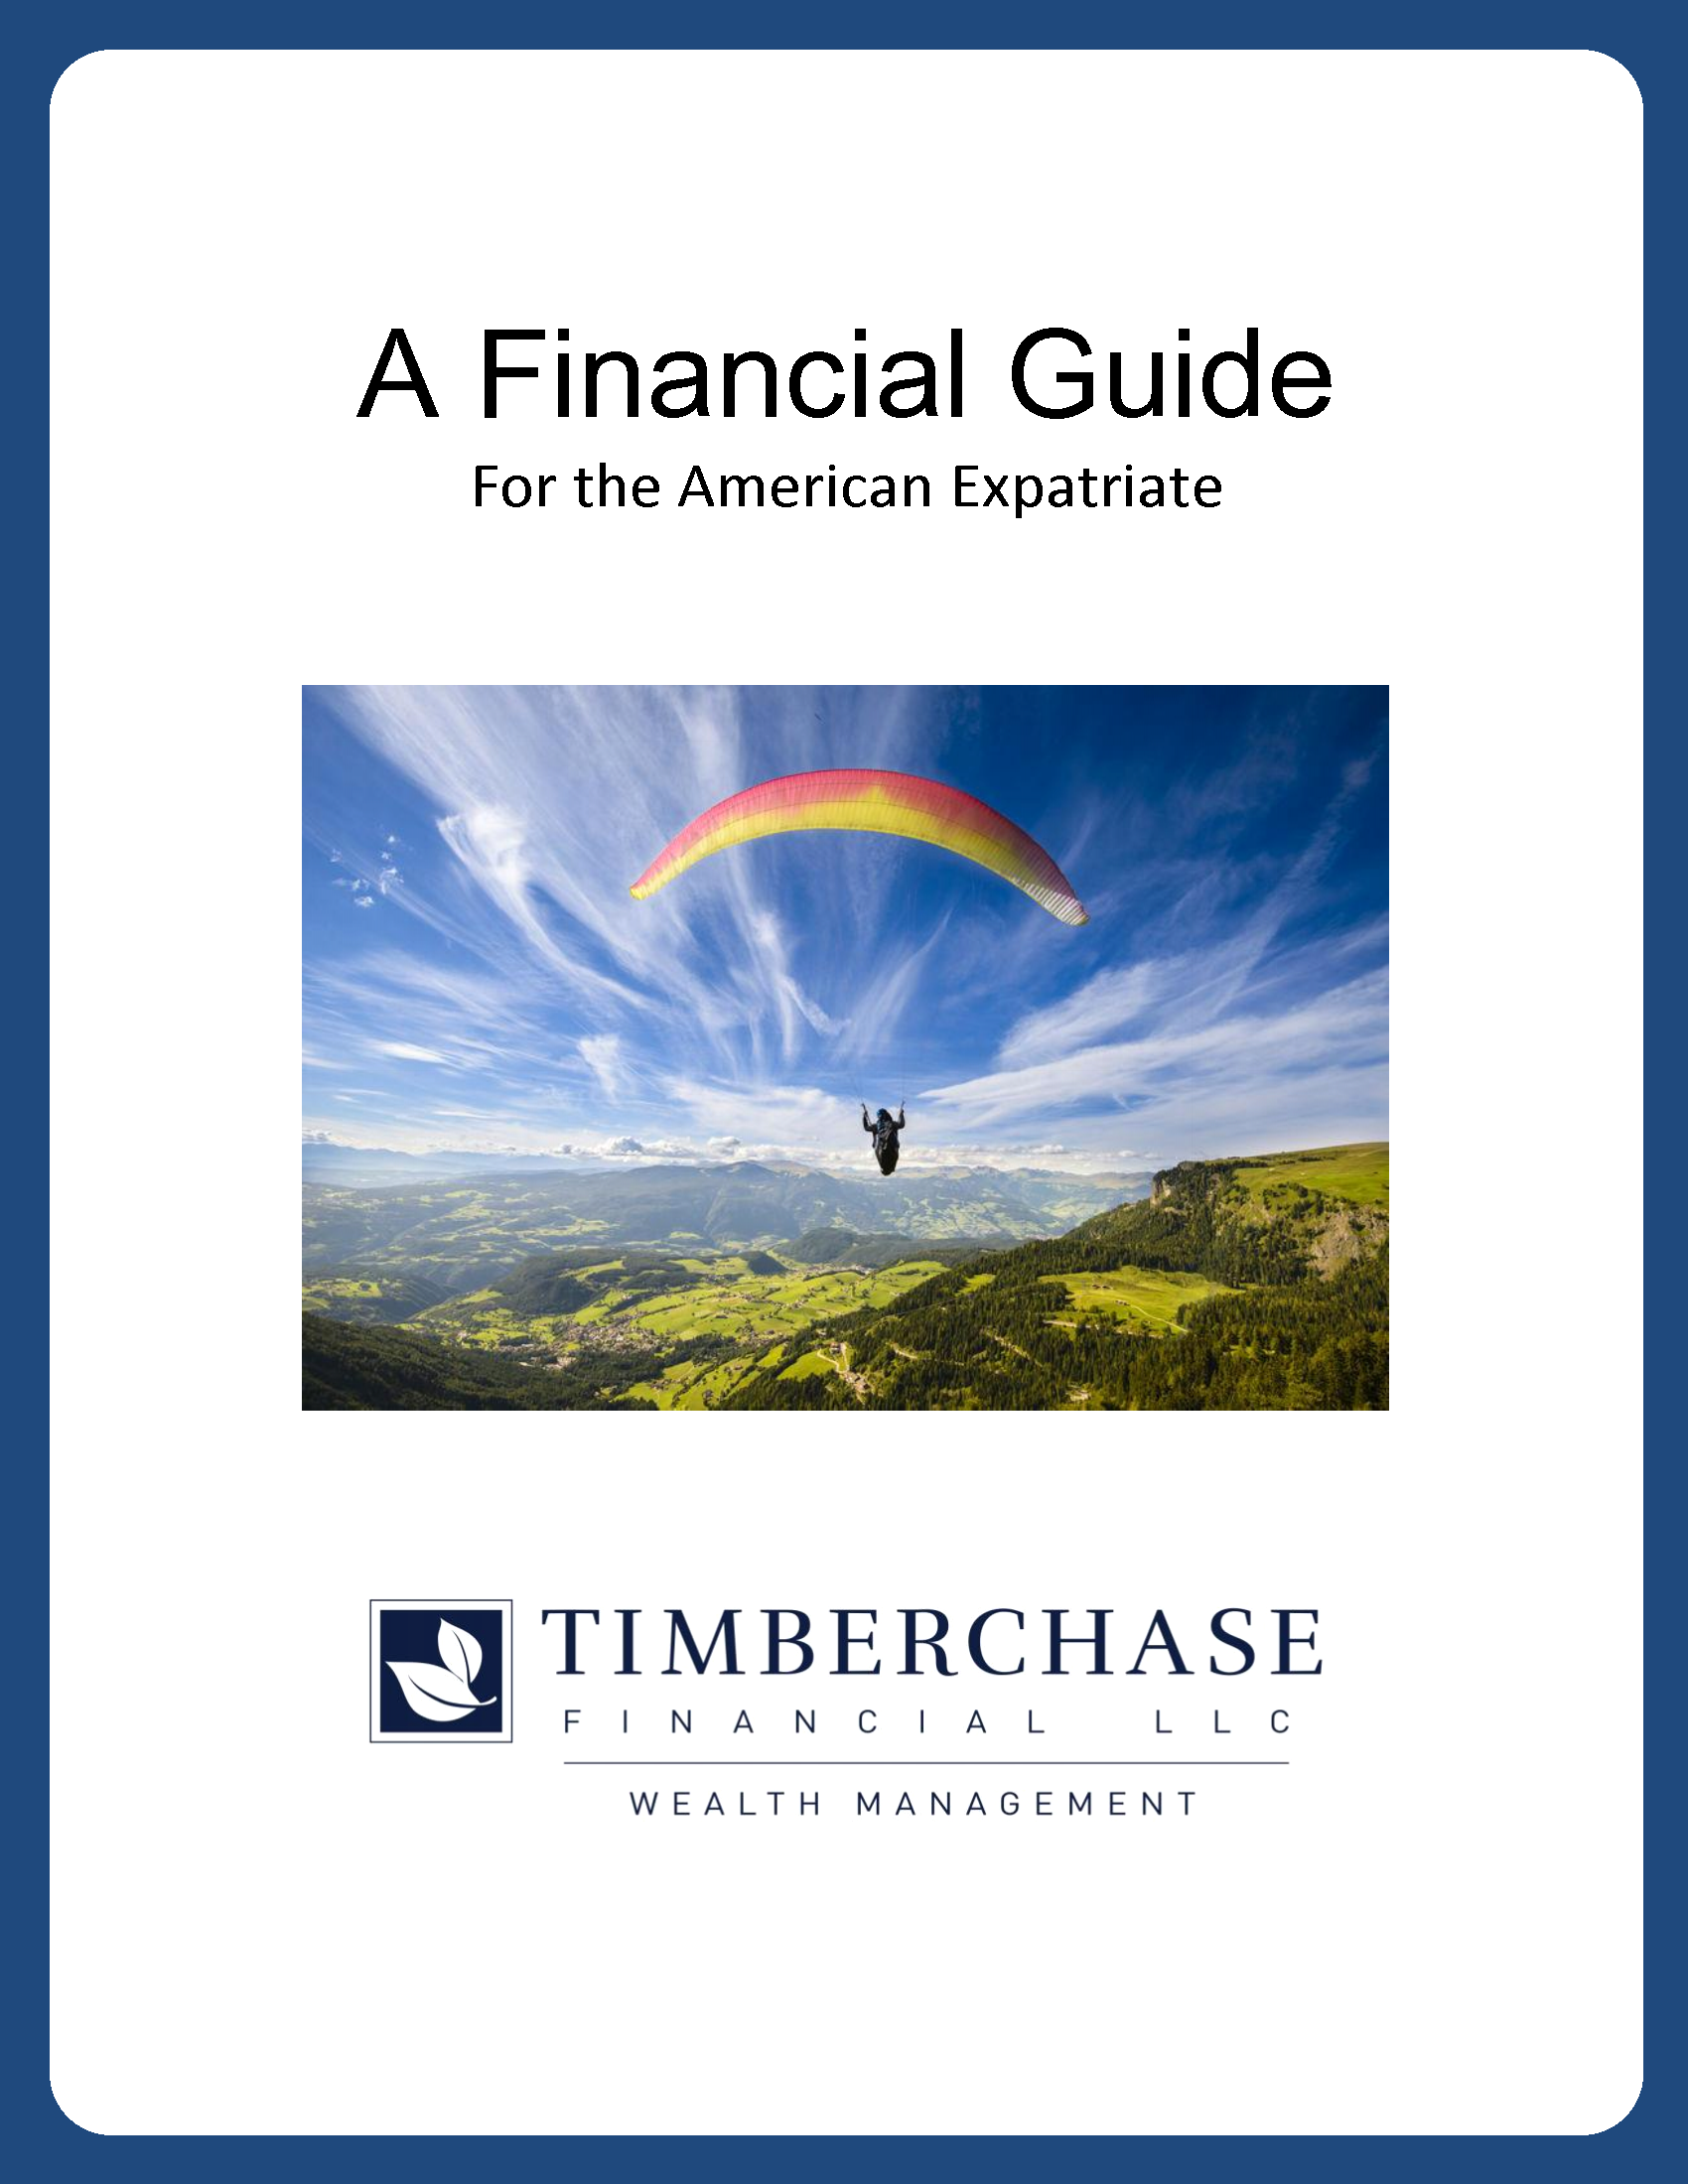 Click here to read our publication A Financial Guide for the American Expatriate.